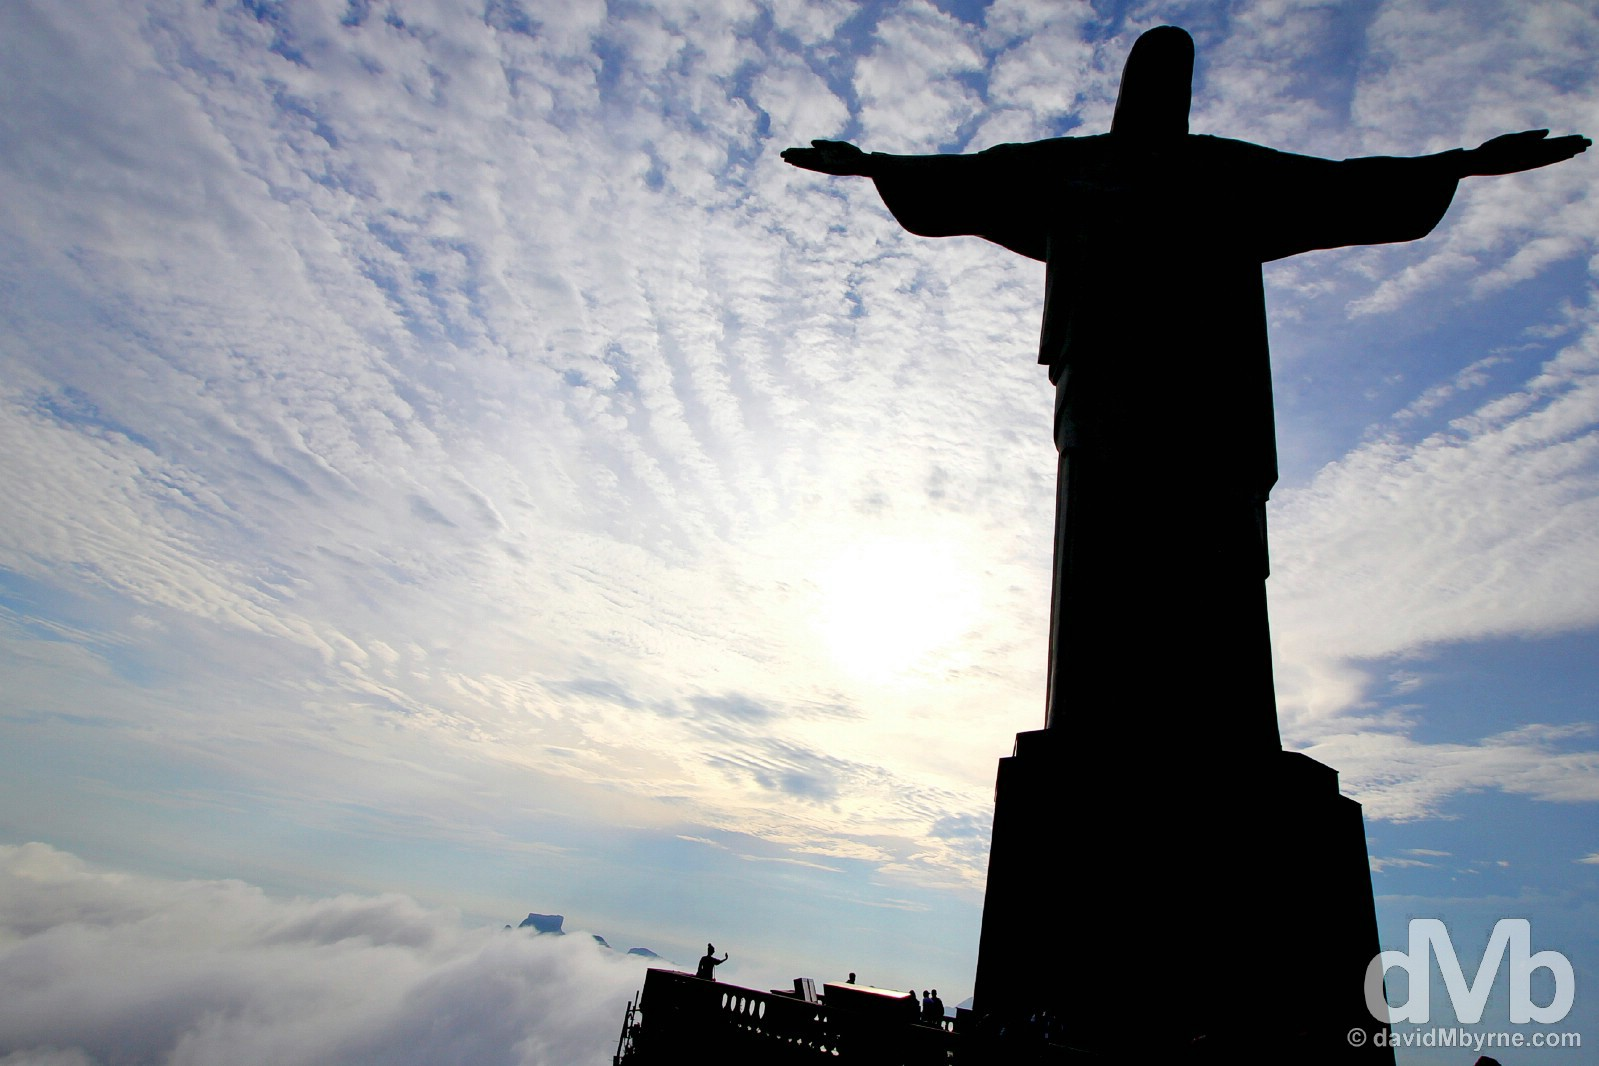 Christ the Redeemer atop Corcovado mountain in Tijuca Forest National Park, Rio de Janeiro, Brazil. December 12, 2015.